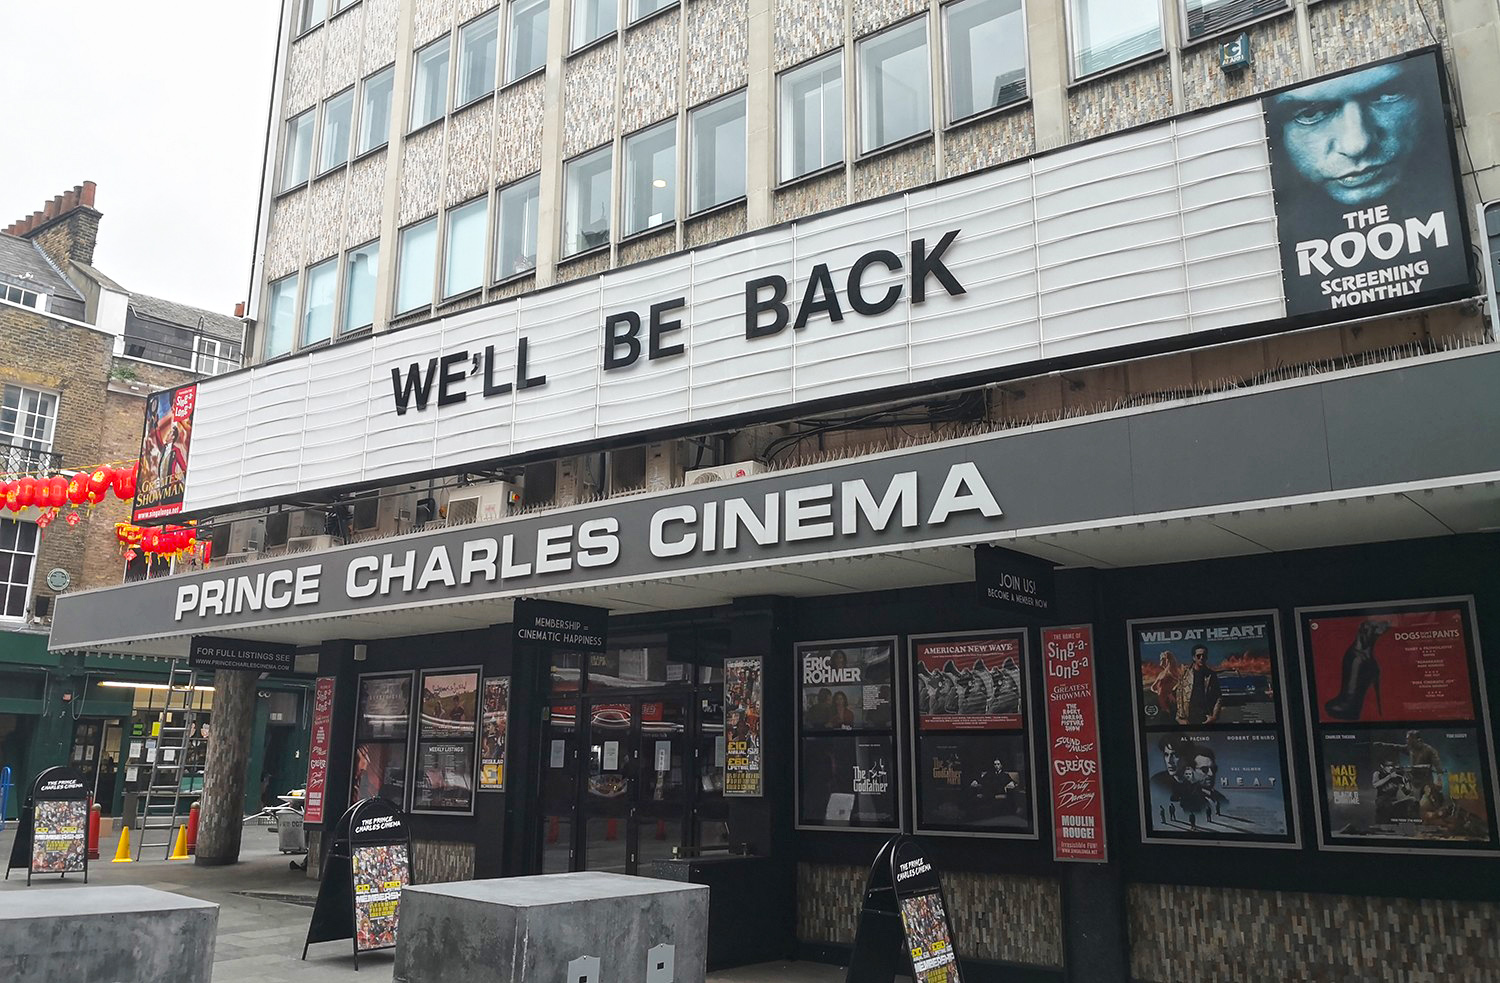 The Prince Charles Cinema in London